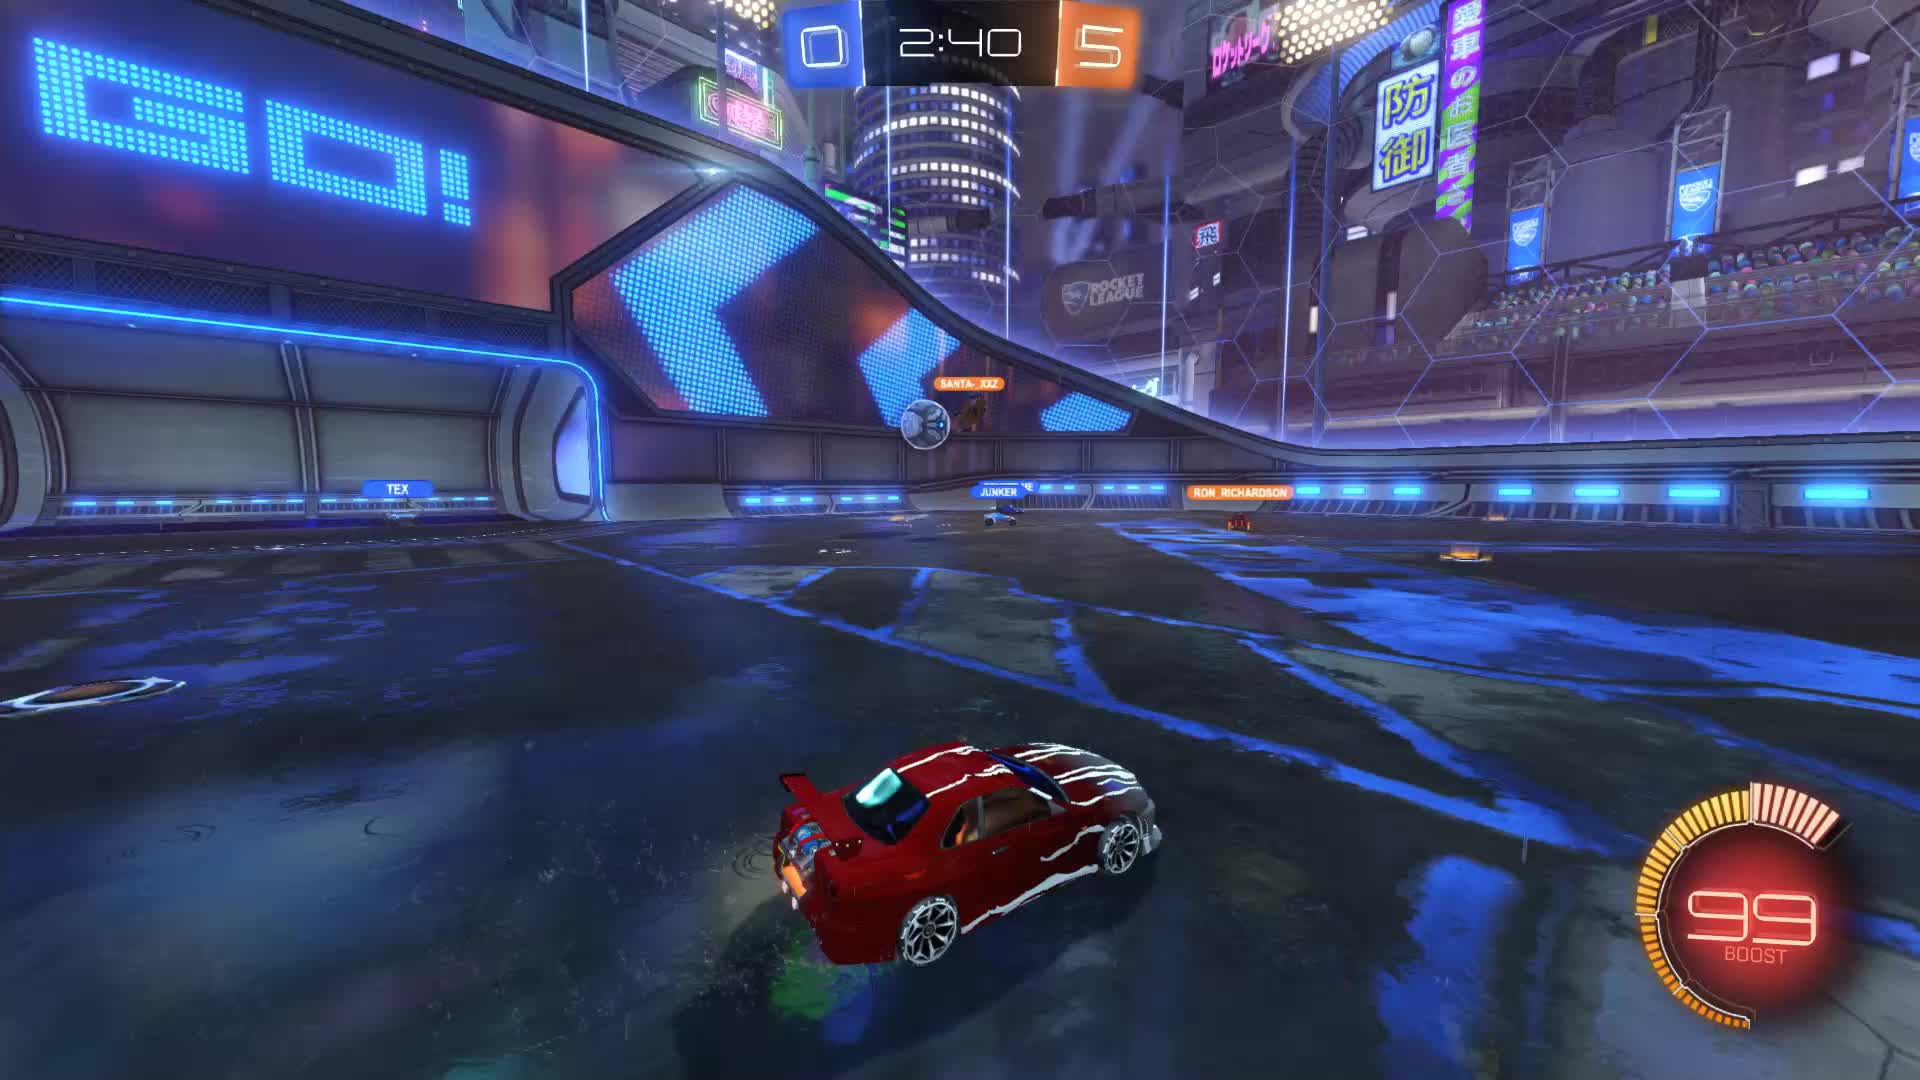 Gif Your Game, GifYourGame, Rocket League, RocketLeague, SCOTLAND FOREVER, Goal 6: SCOTLAND FOREVER GIFs